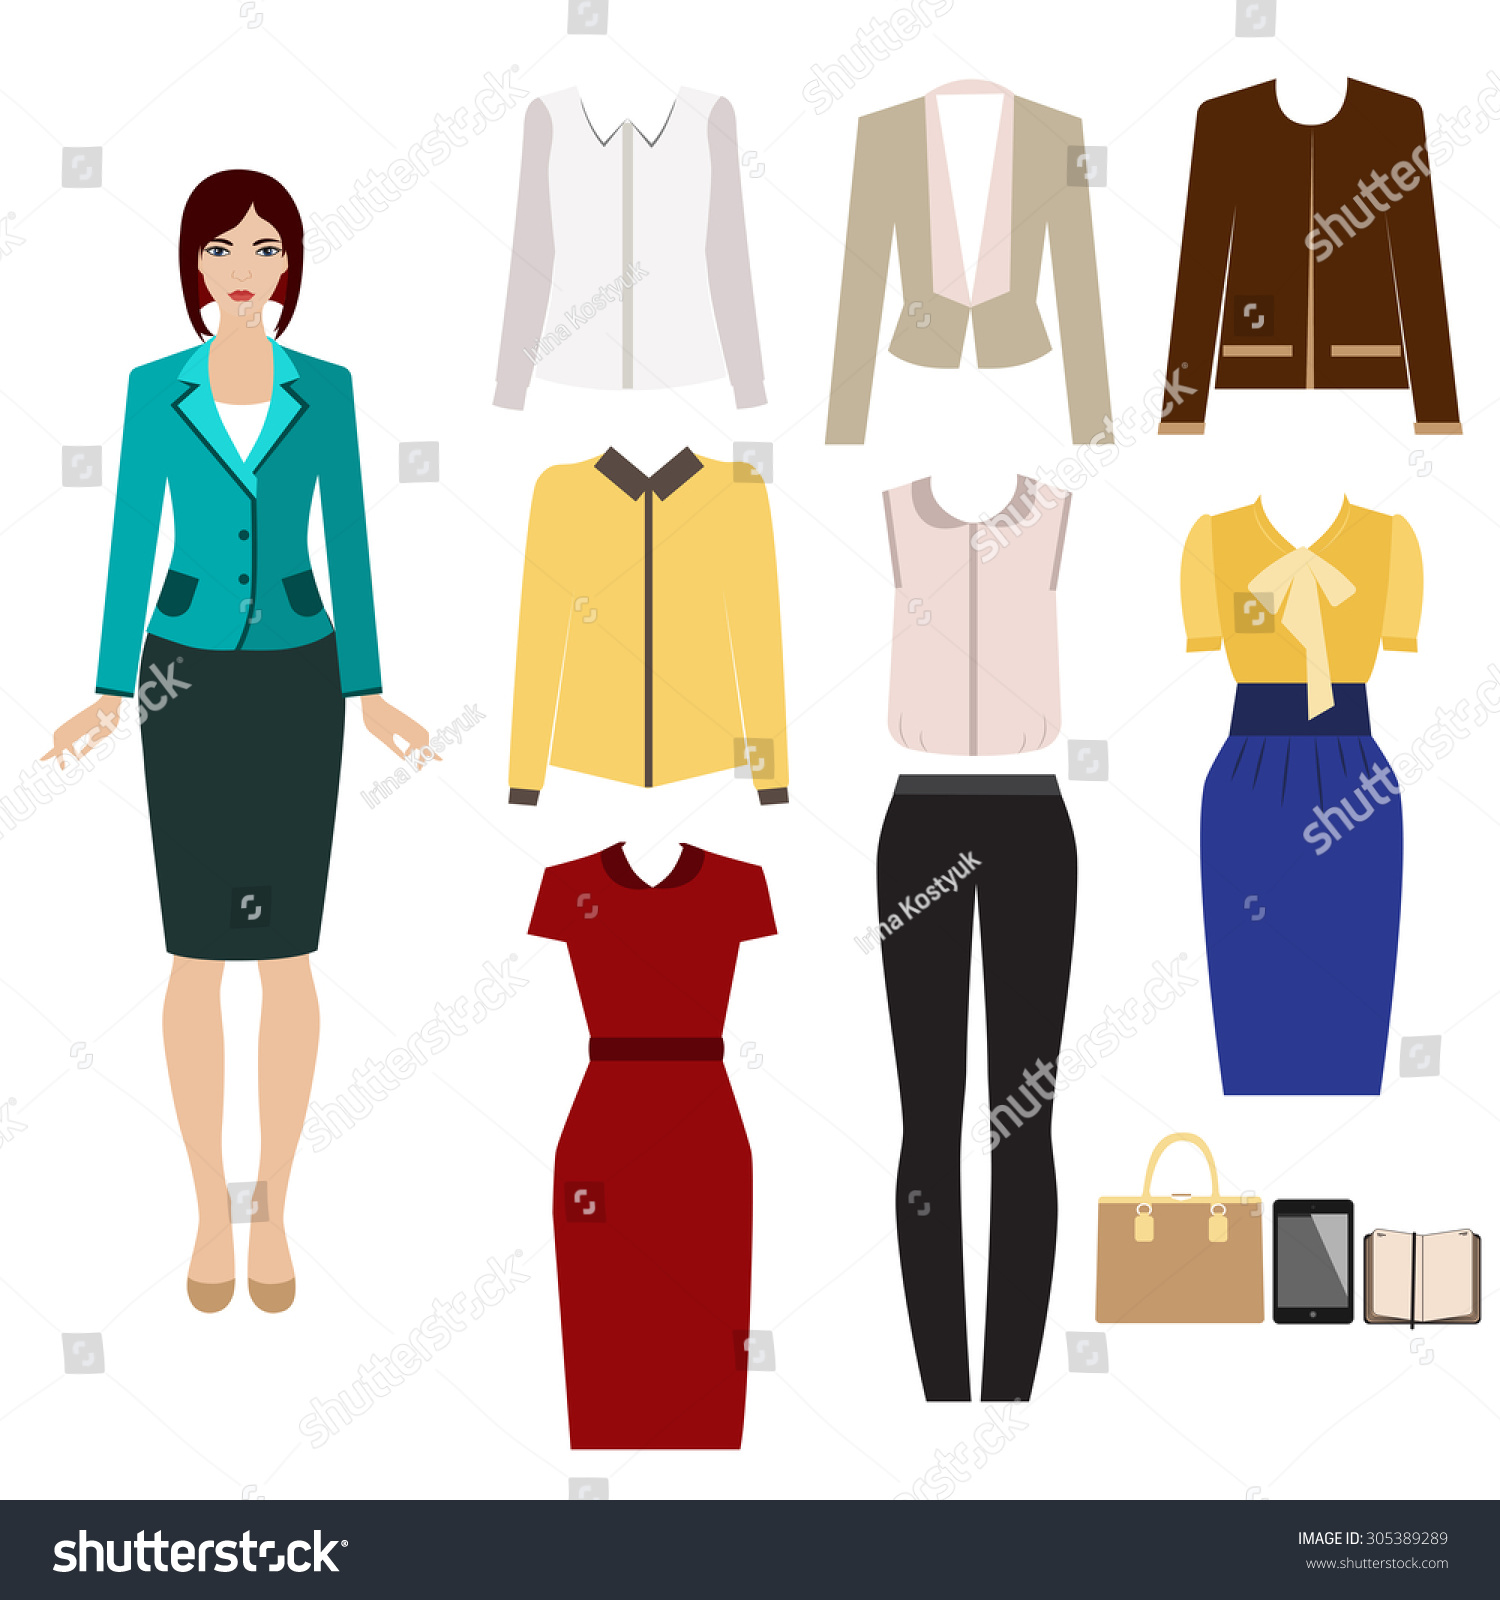 Business Outfit Paper Doll Set Elegant Stock Vector 305389289 Shutterstock